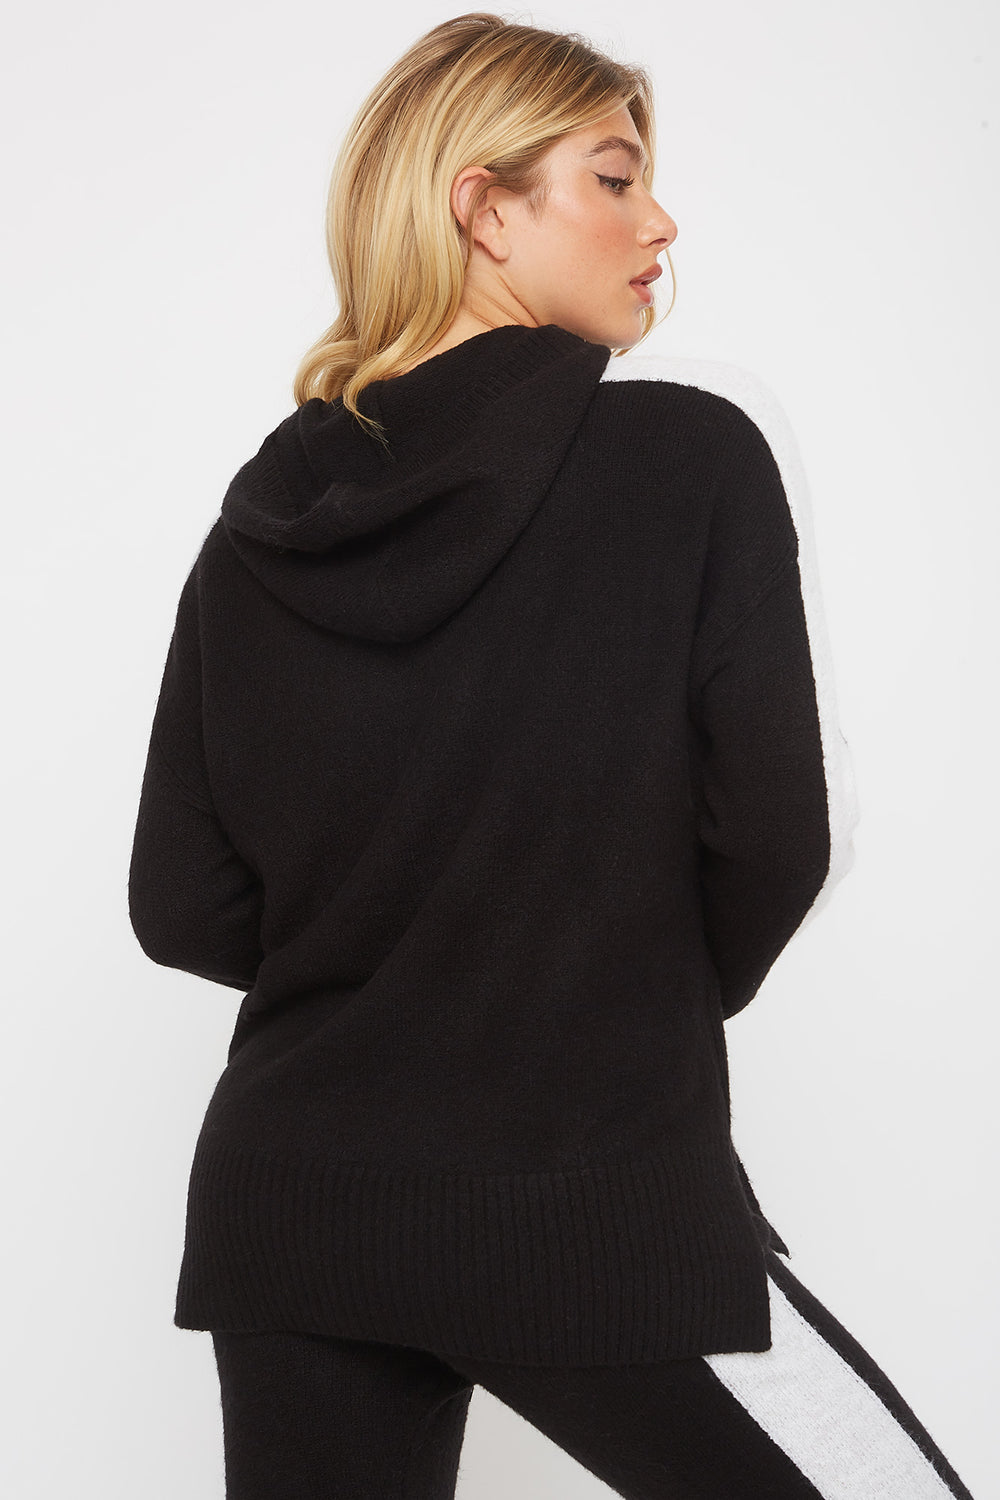 Mossy Drawstring Hoodie Black With White